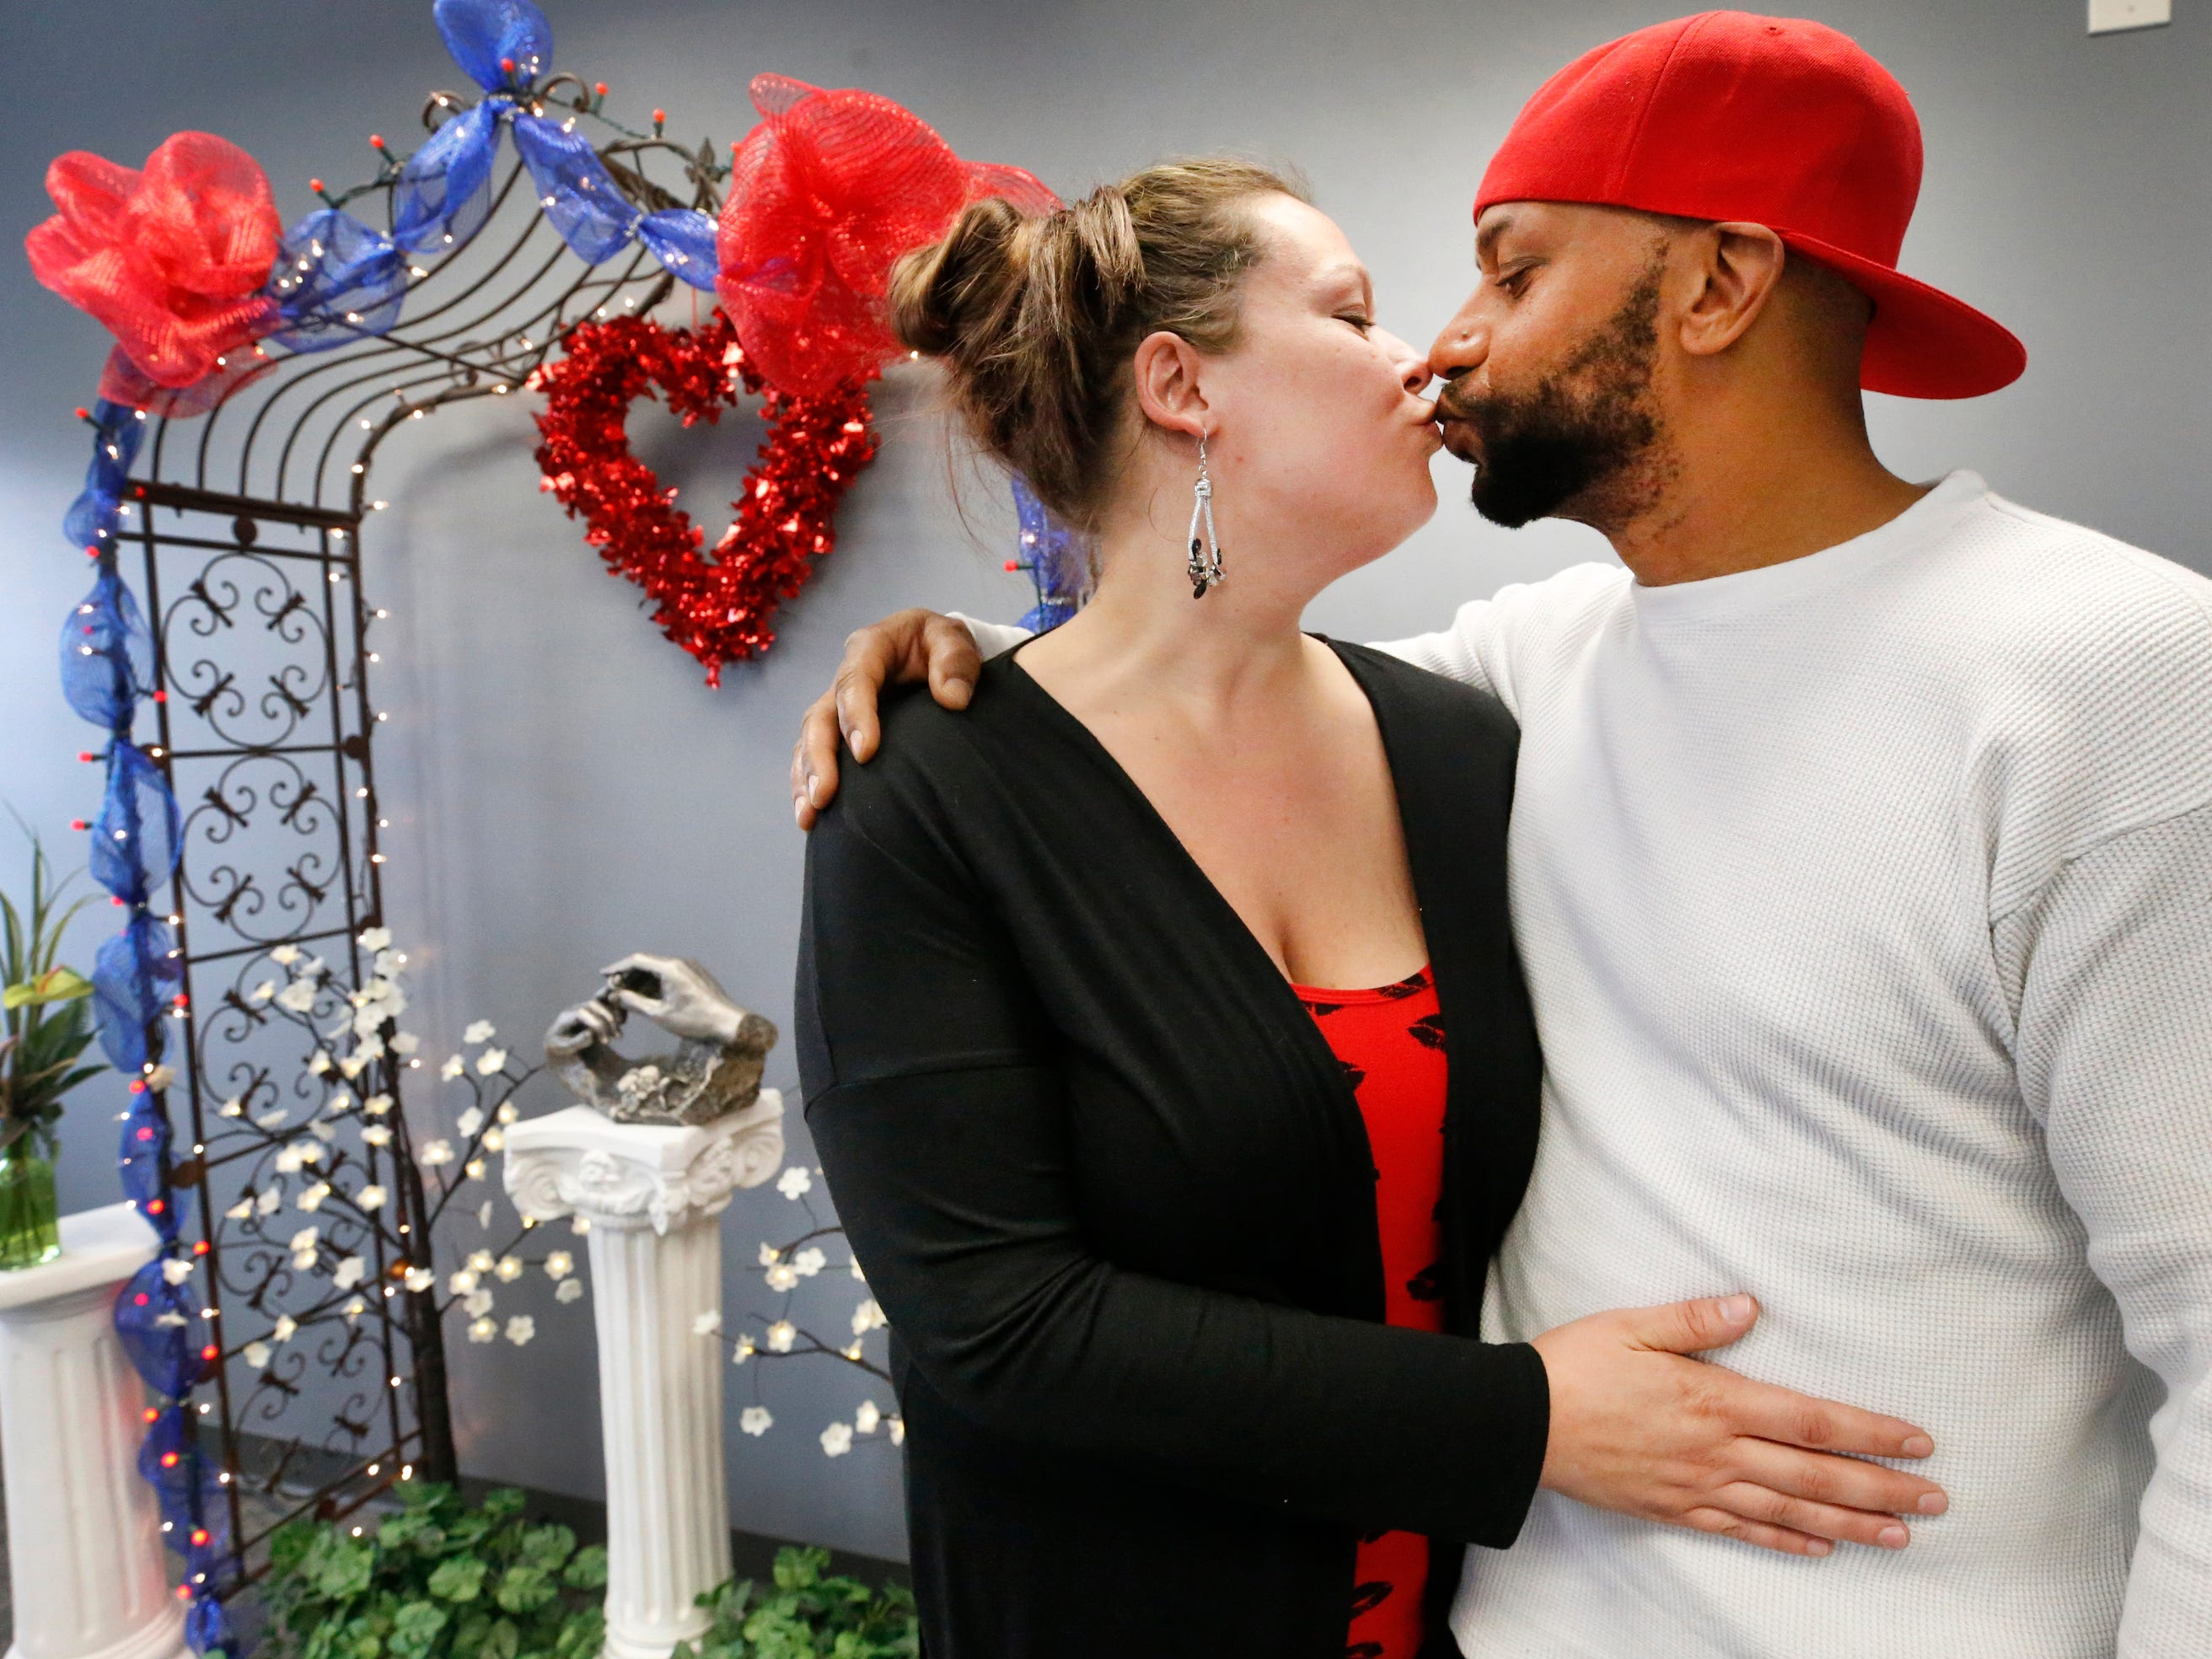 Kimberly (Ervin) Aiden and Shermaine Aiden kiss after they were married at the Marry Me of Tennessee Wedding Chapel, in Murfreesboro, on Valentine's Day on Thursday, Feb. 14, 2019.